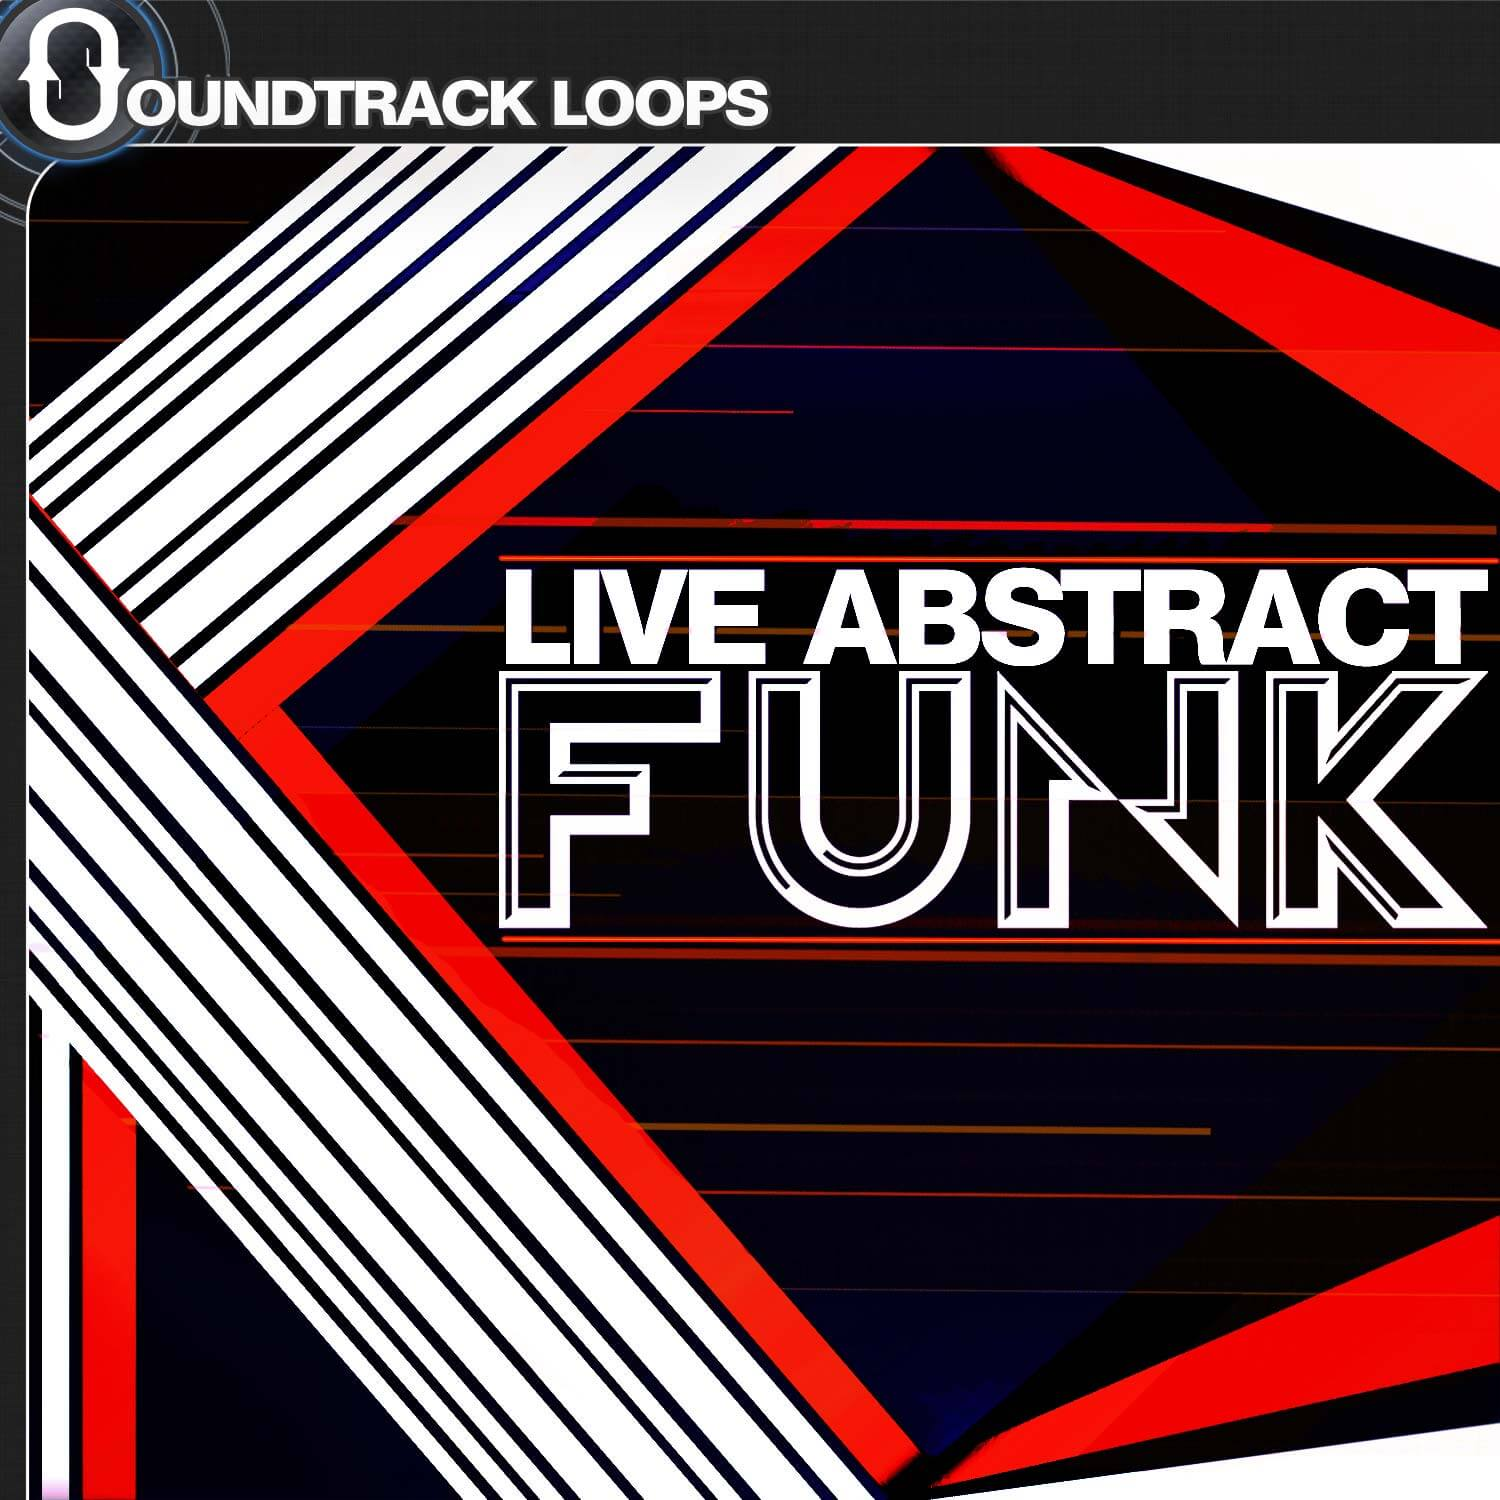 Live Abstract Funk Loops - by L.A. RIOT